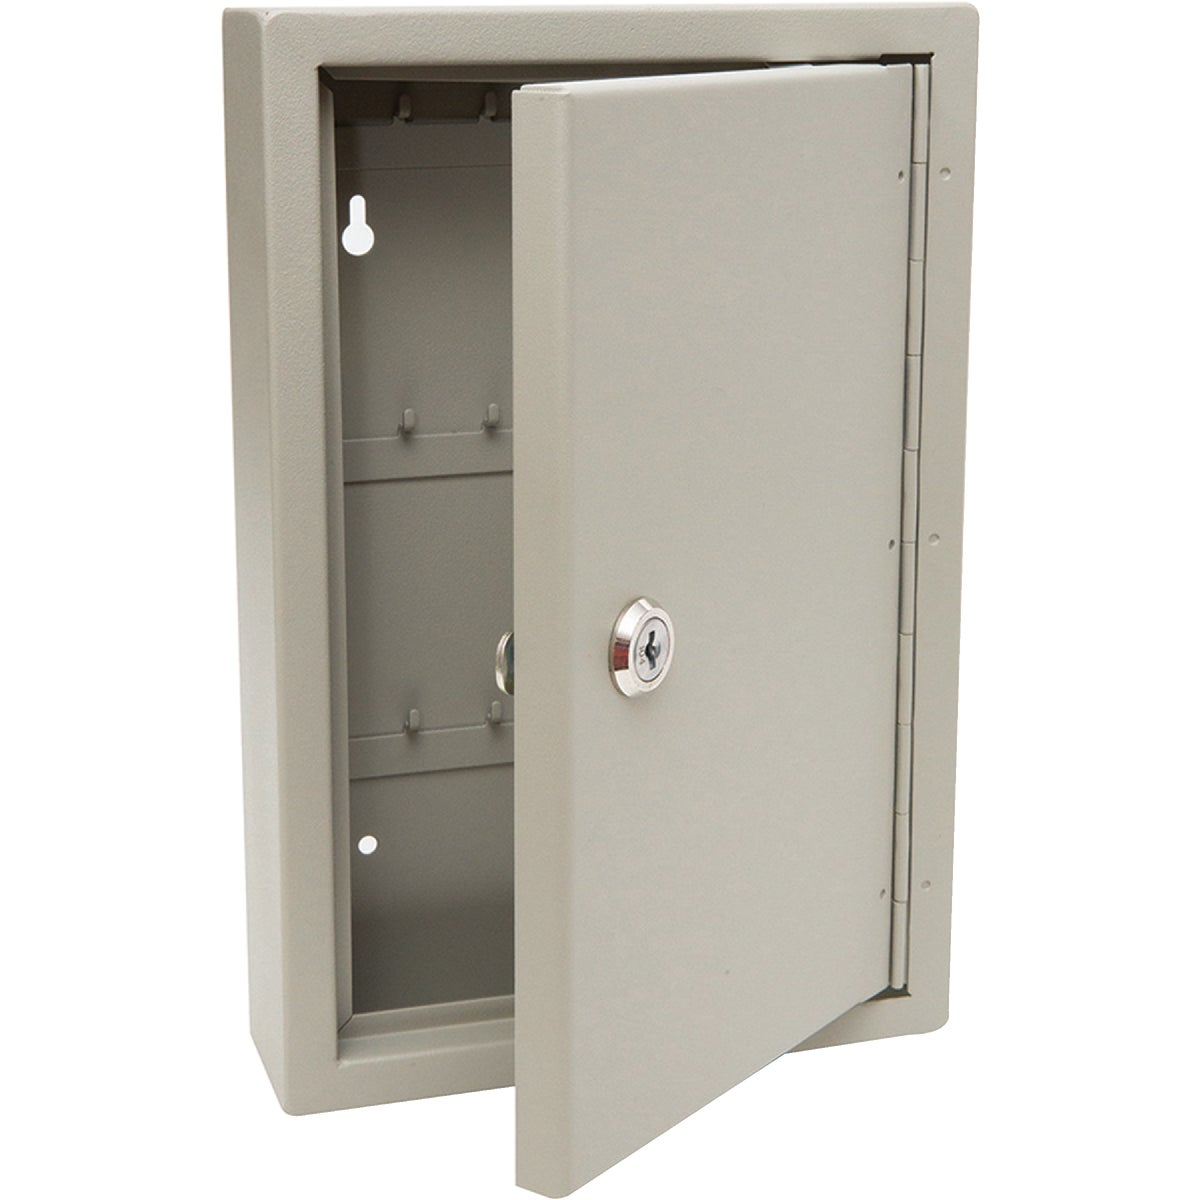 STEEL KEY CABINET - 001795 by Supra Products Inc